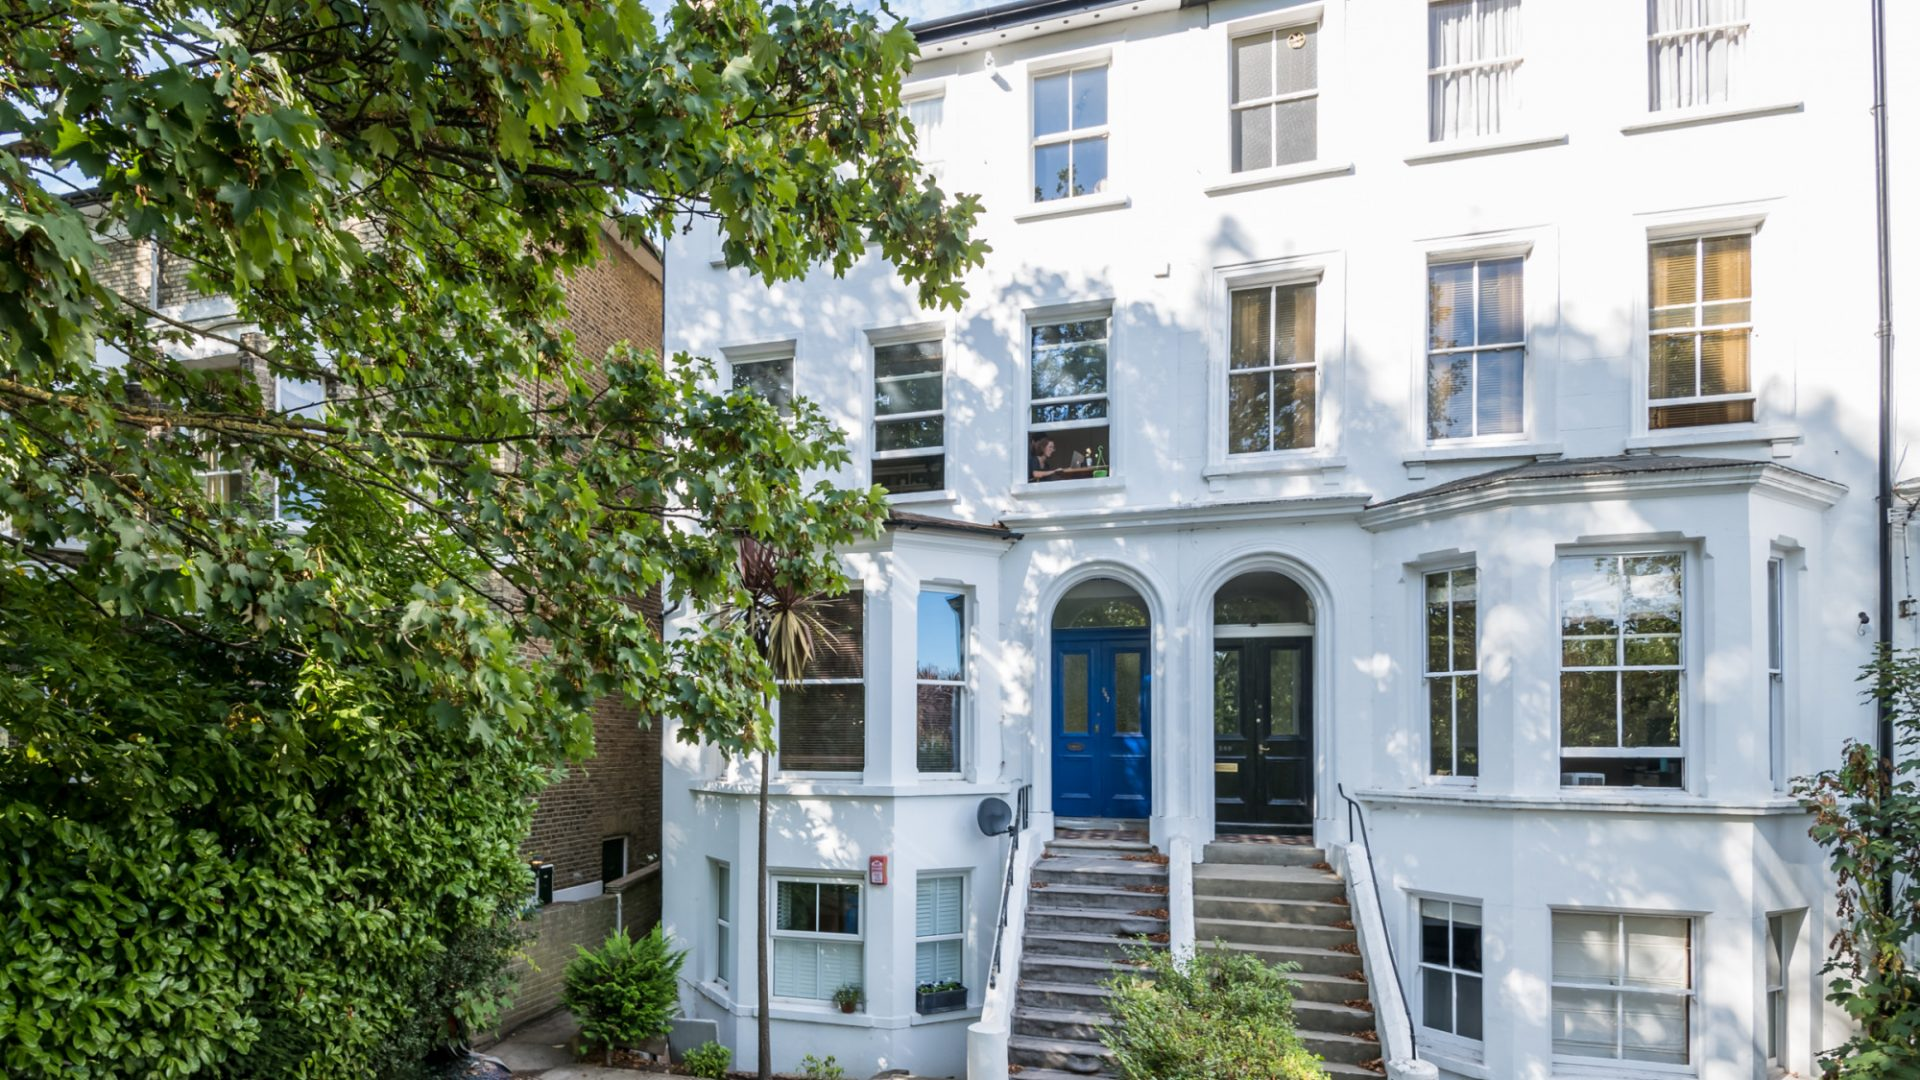 Peckham Rye, SE15 for sale with Mr and Mrs Clarke estate agent